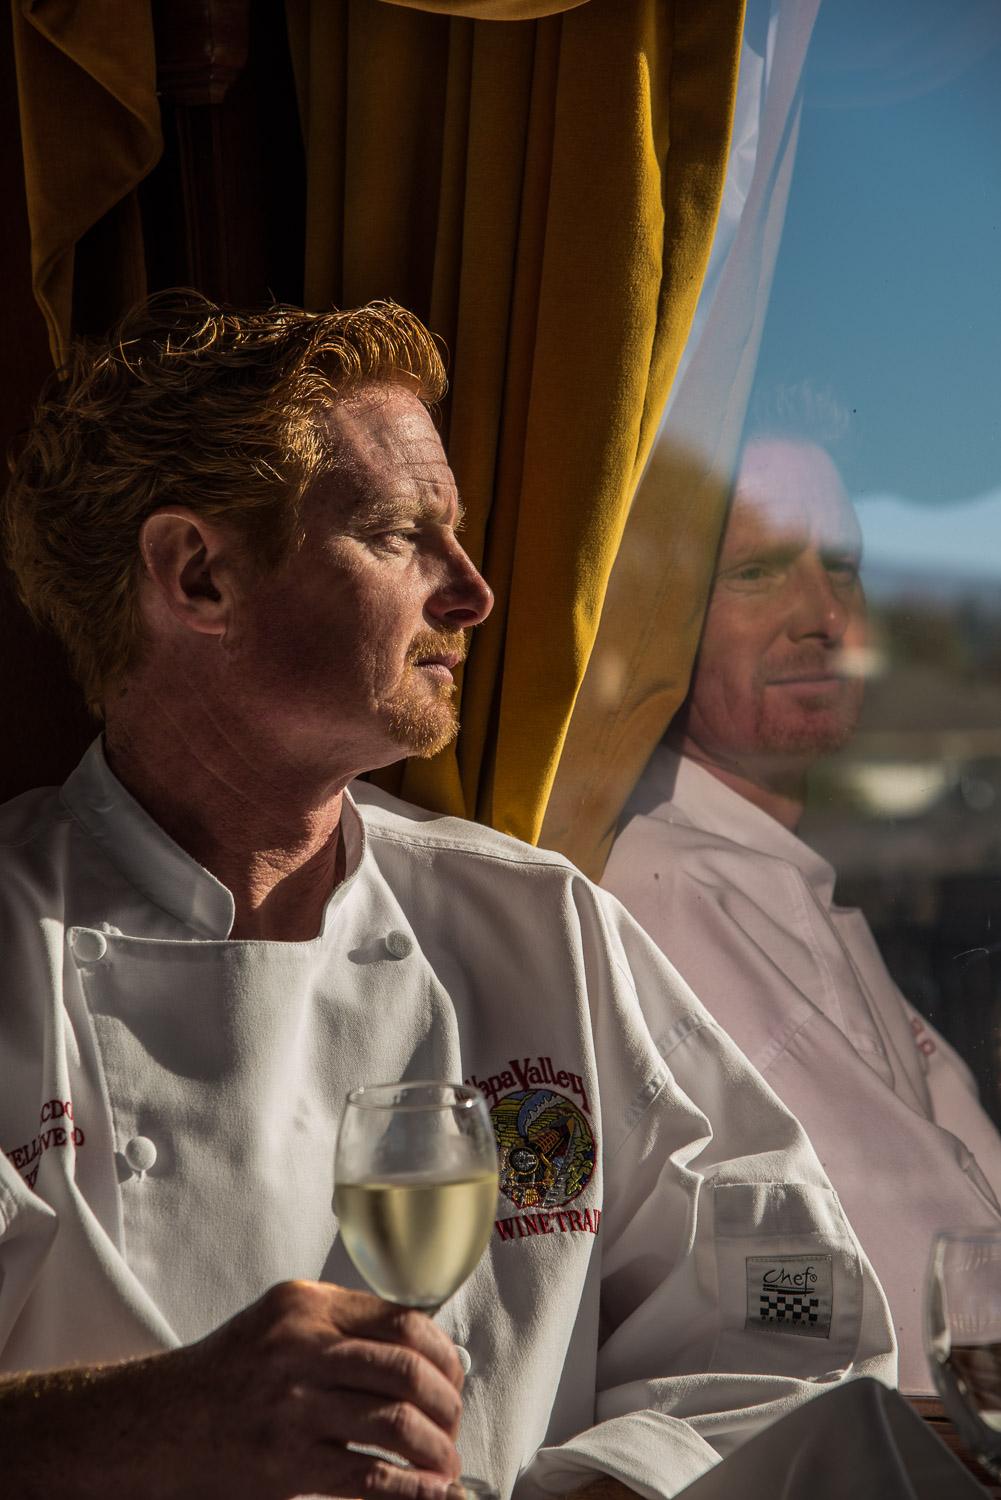 The Napa Valley Wine Train Chef